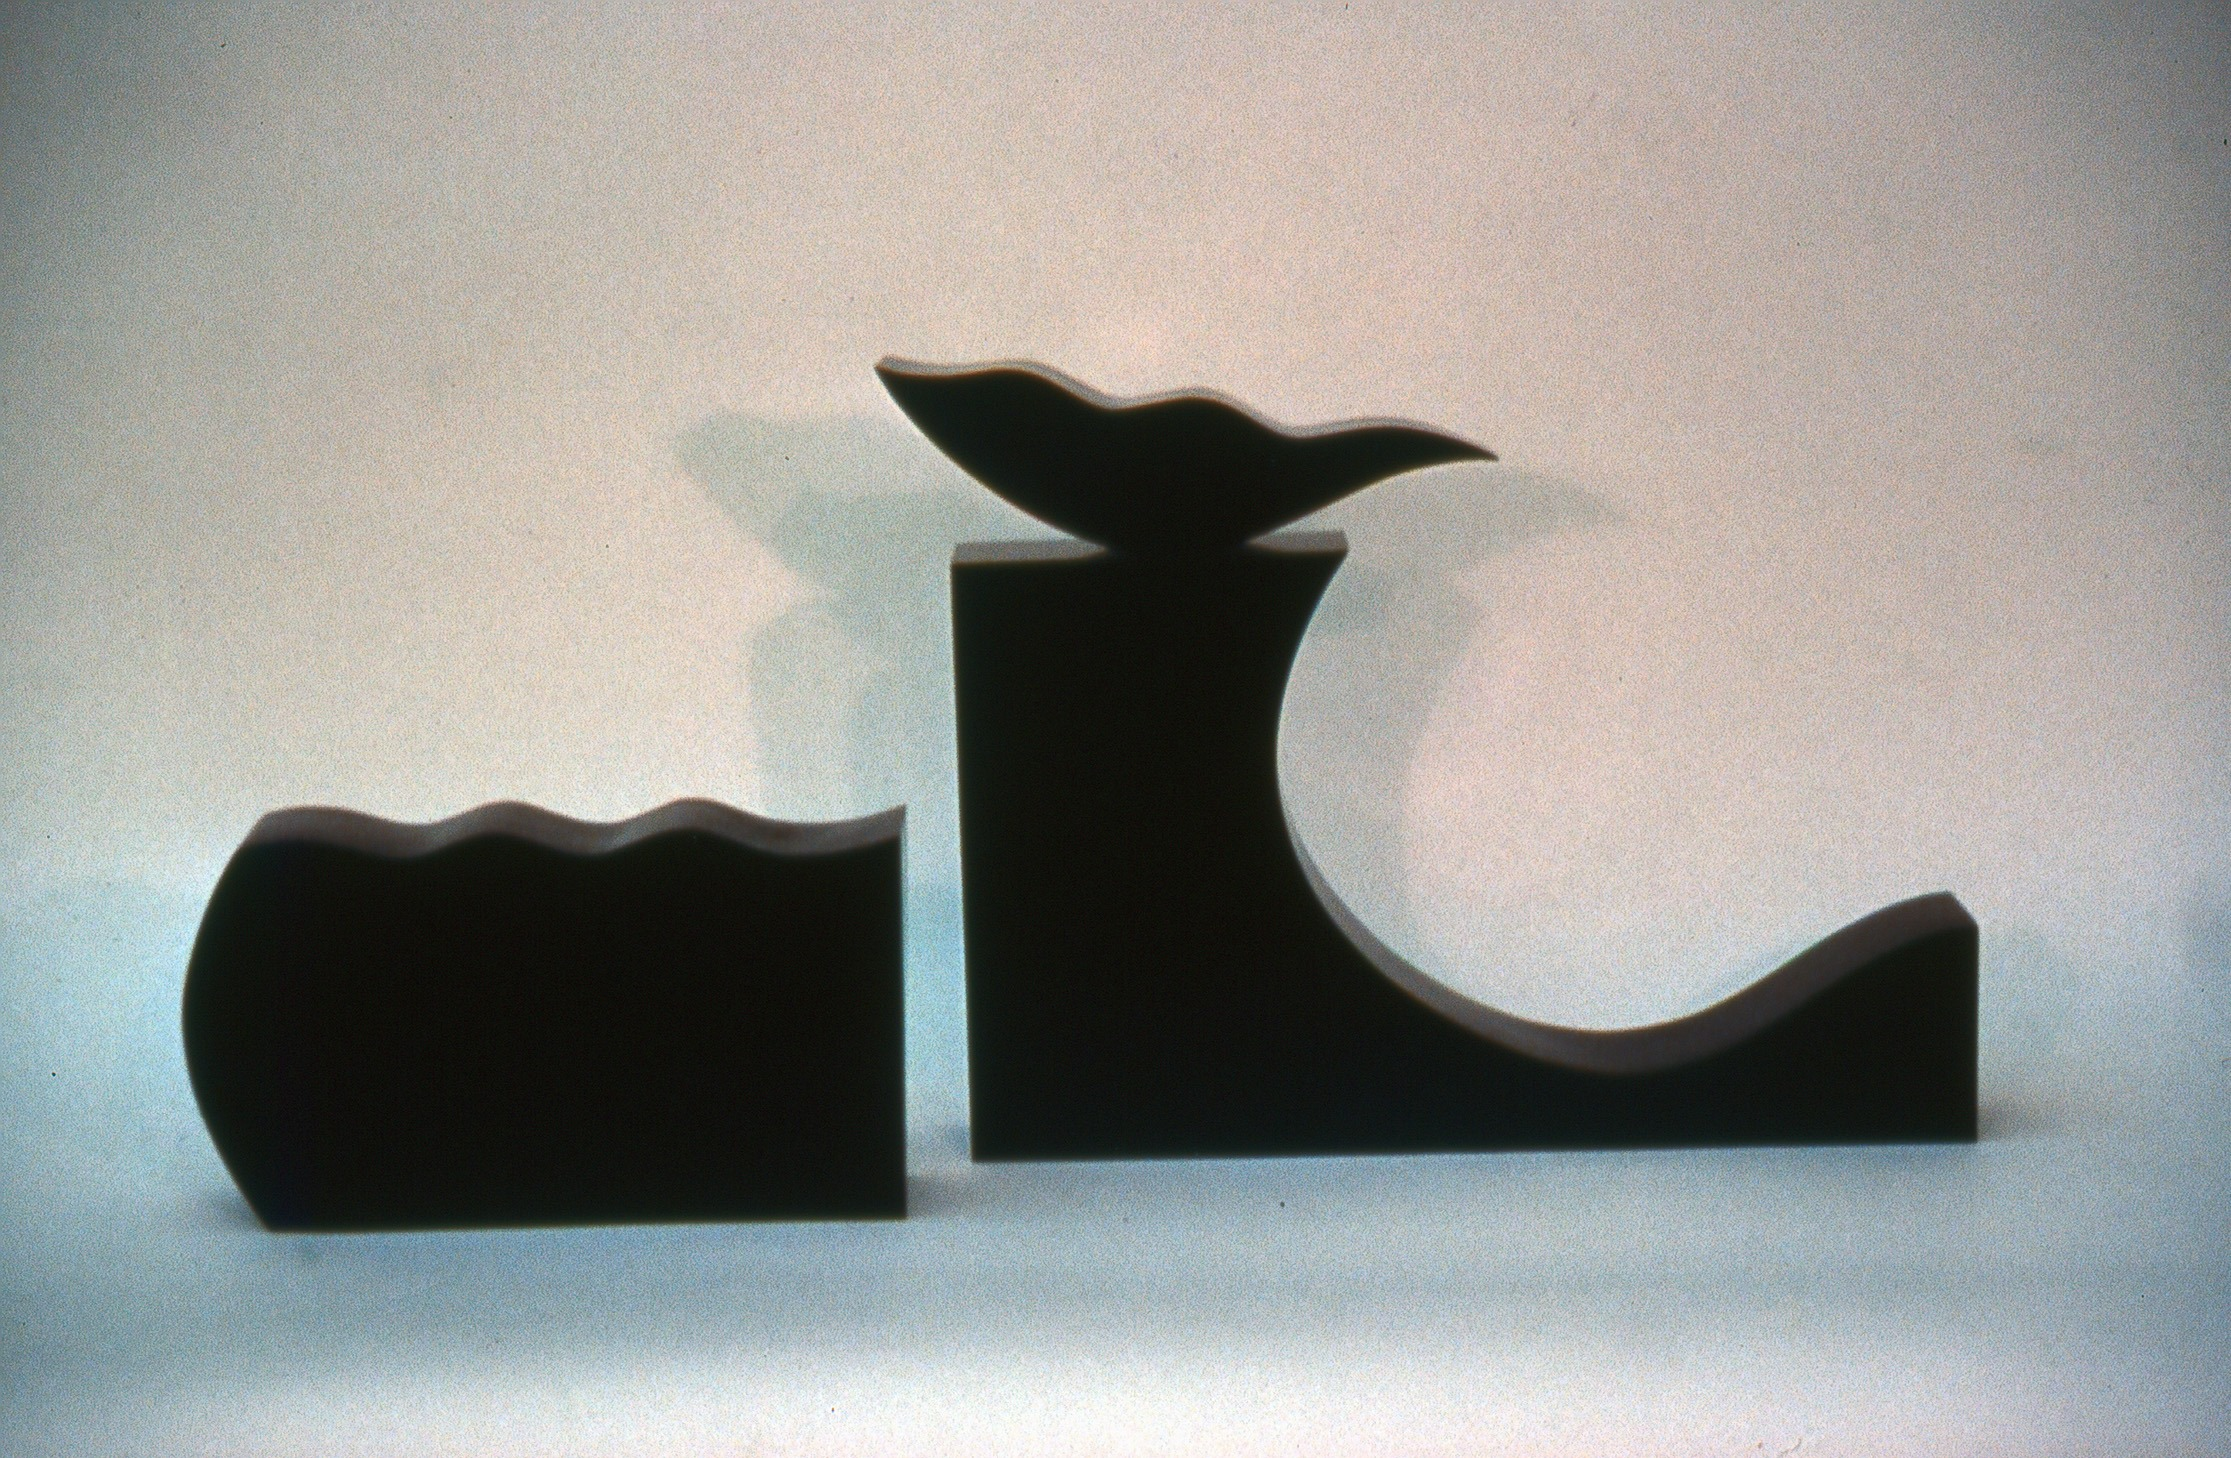 Black Box VII  - Aspects of Nature II  1990, bronze, 11x18x3 in